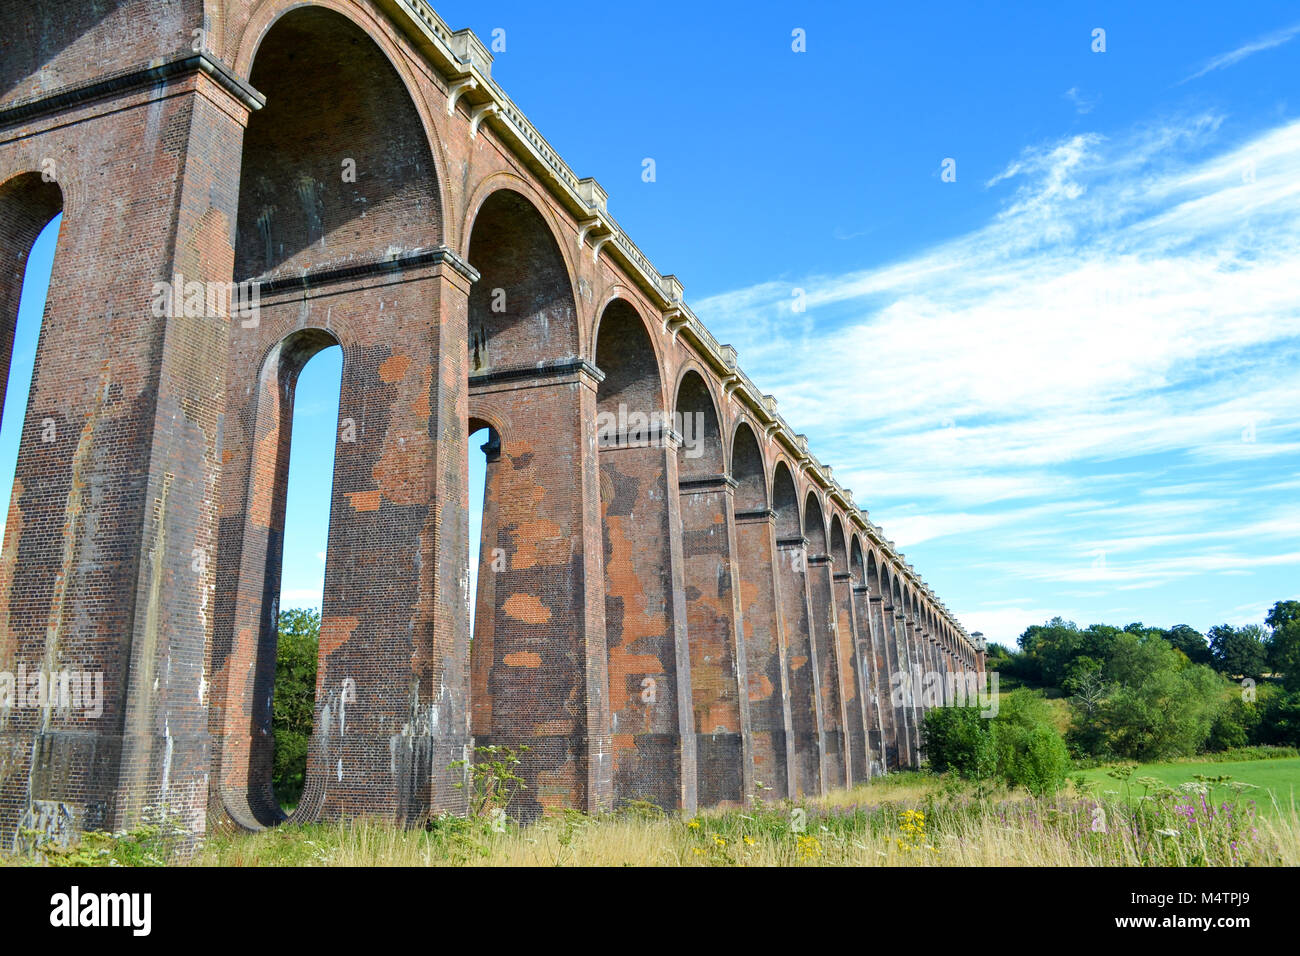 Railway bridge, Sussex, UK - Stock Image